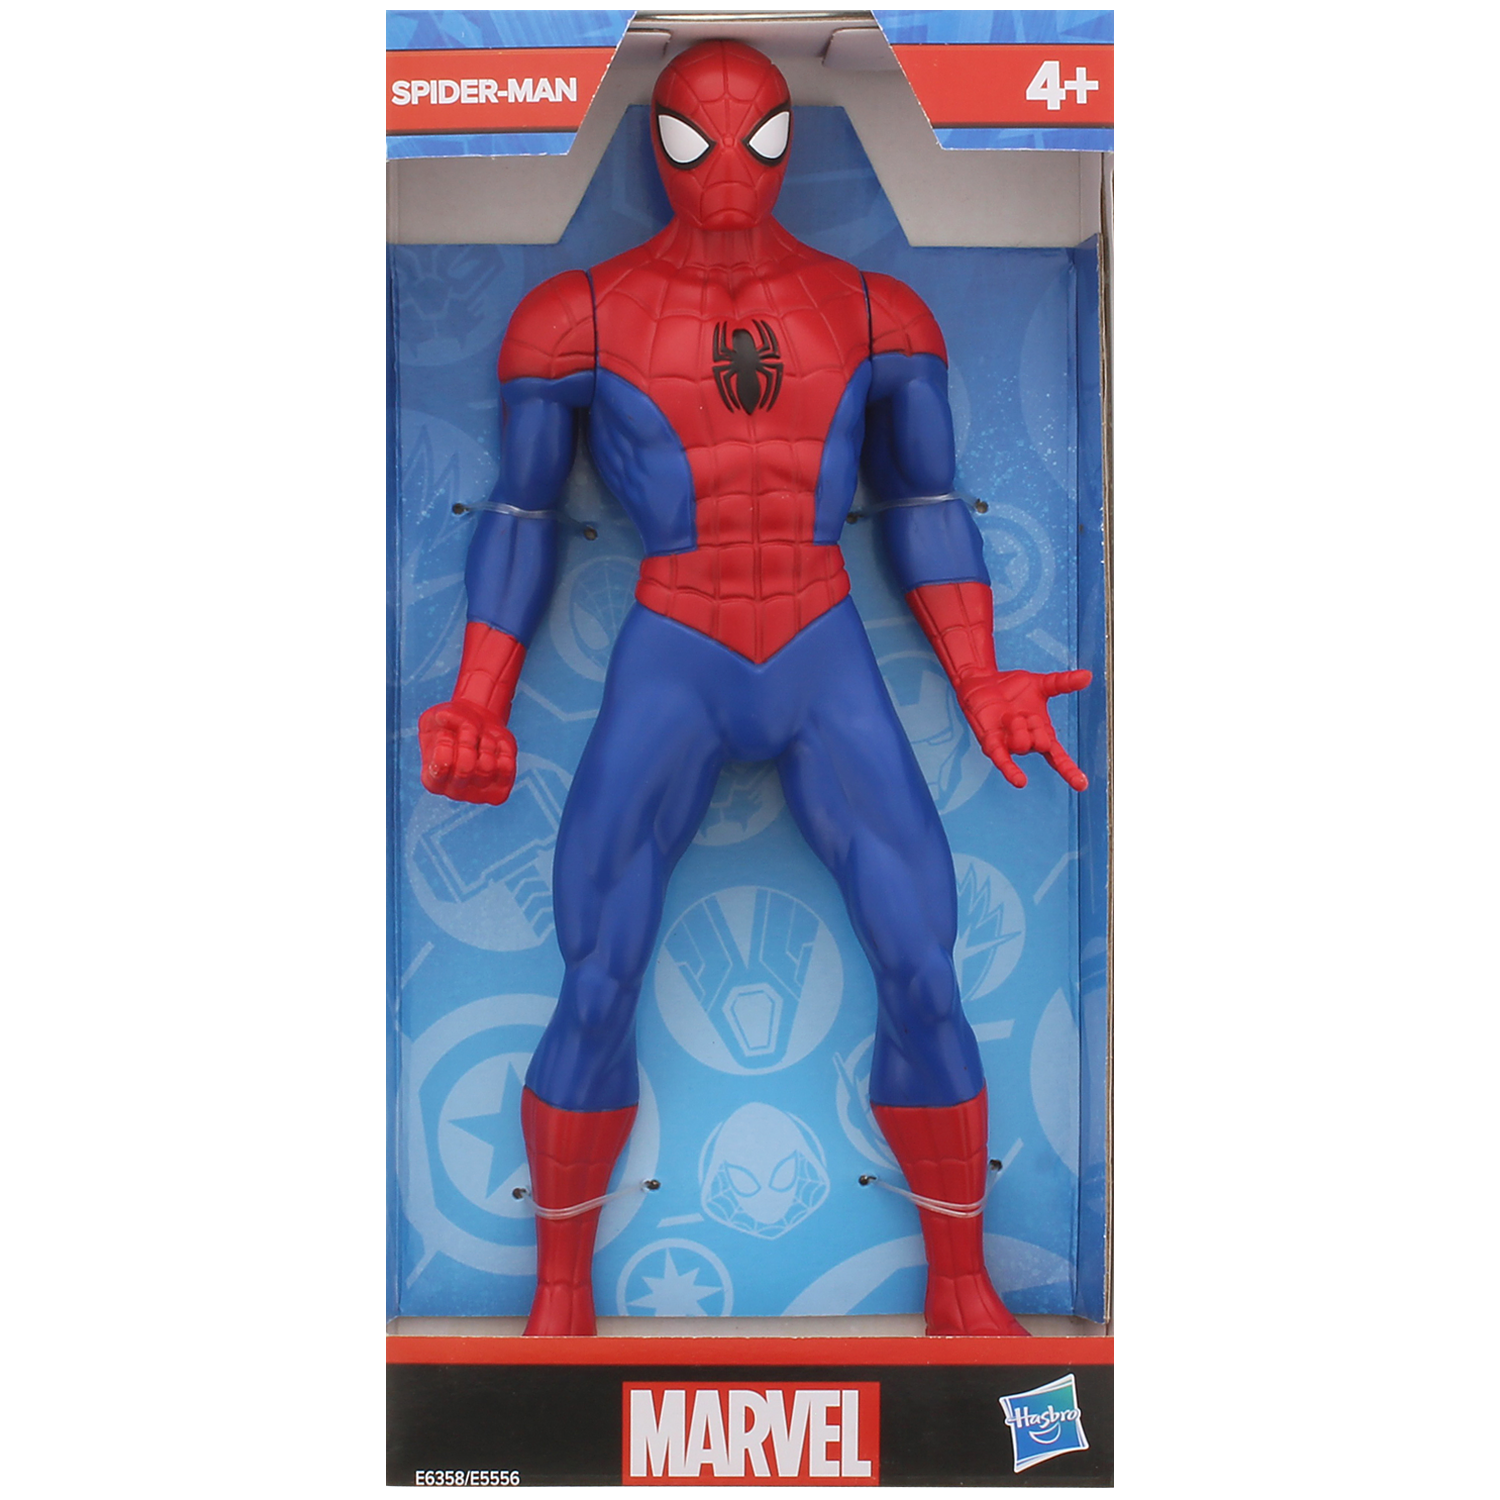 Spiderman pop